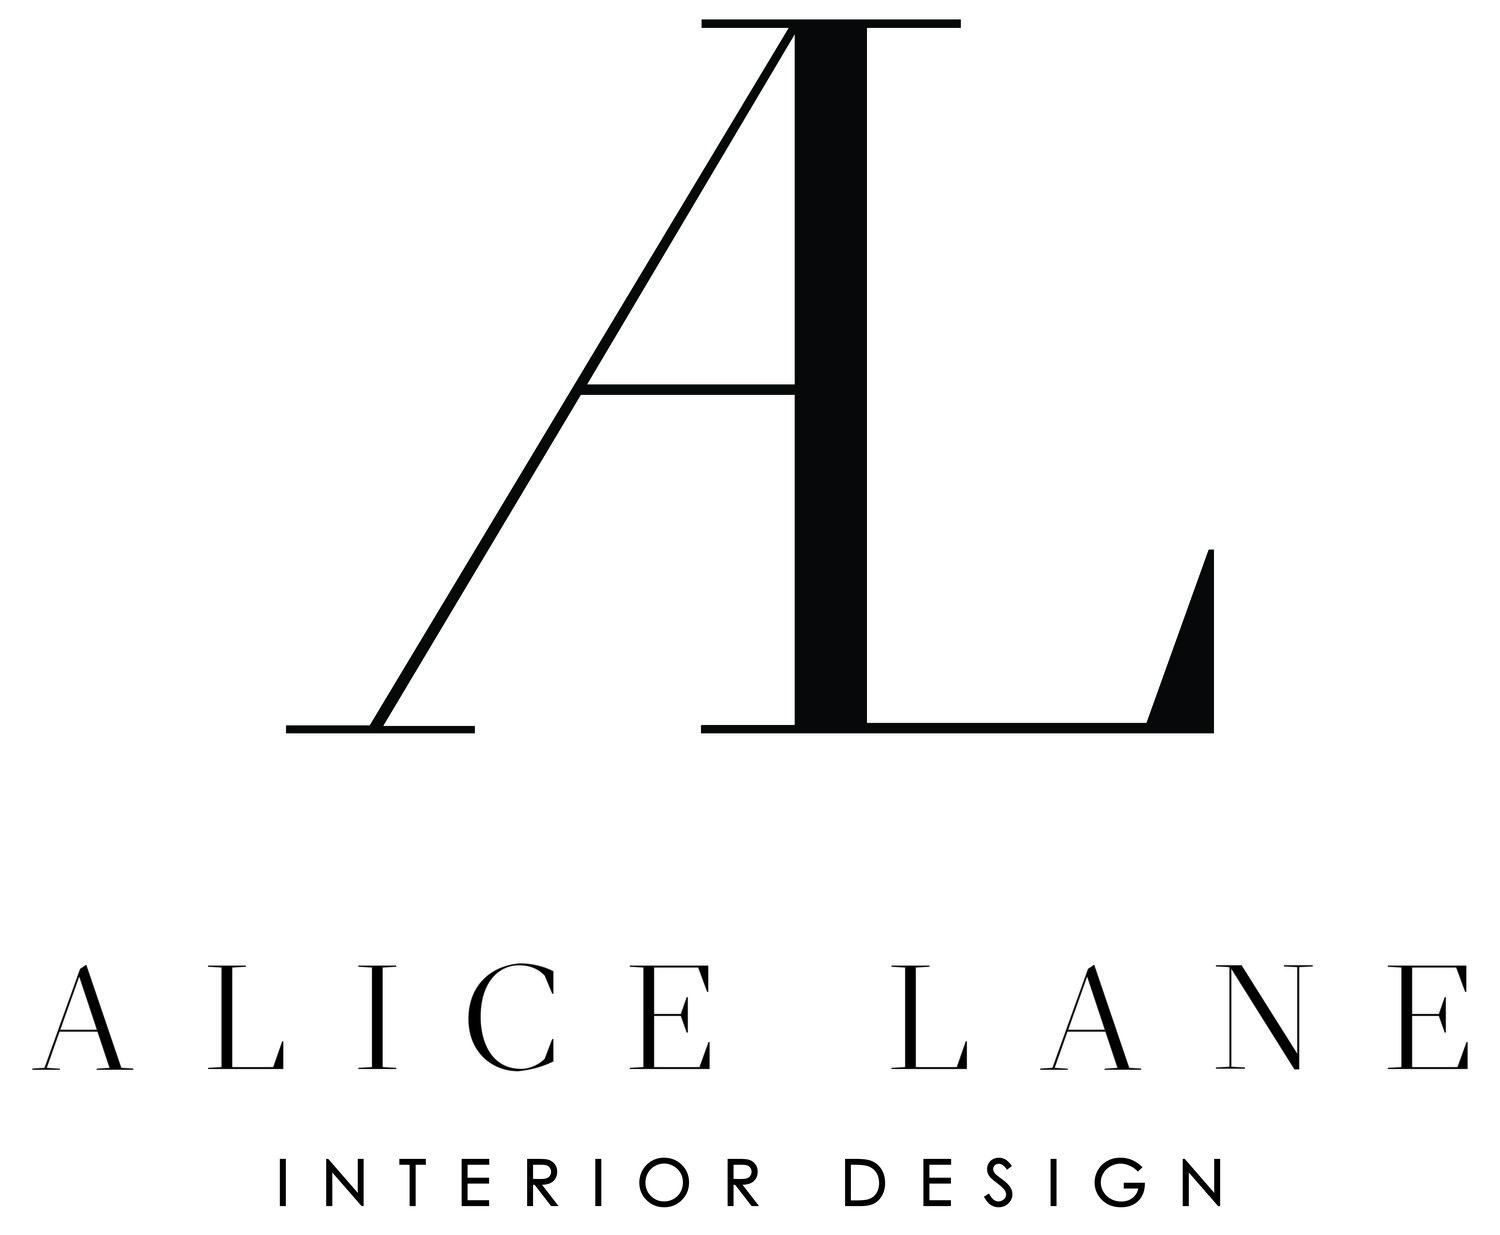 ALICE LANE INTERIOR DESIGN